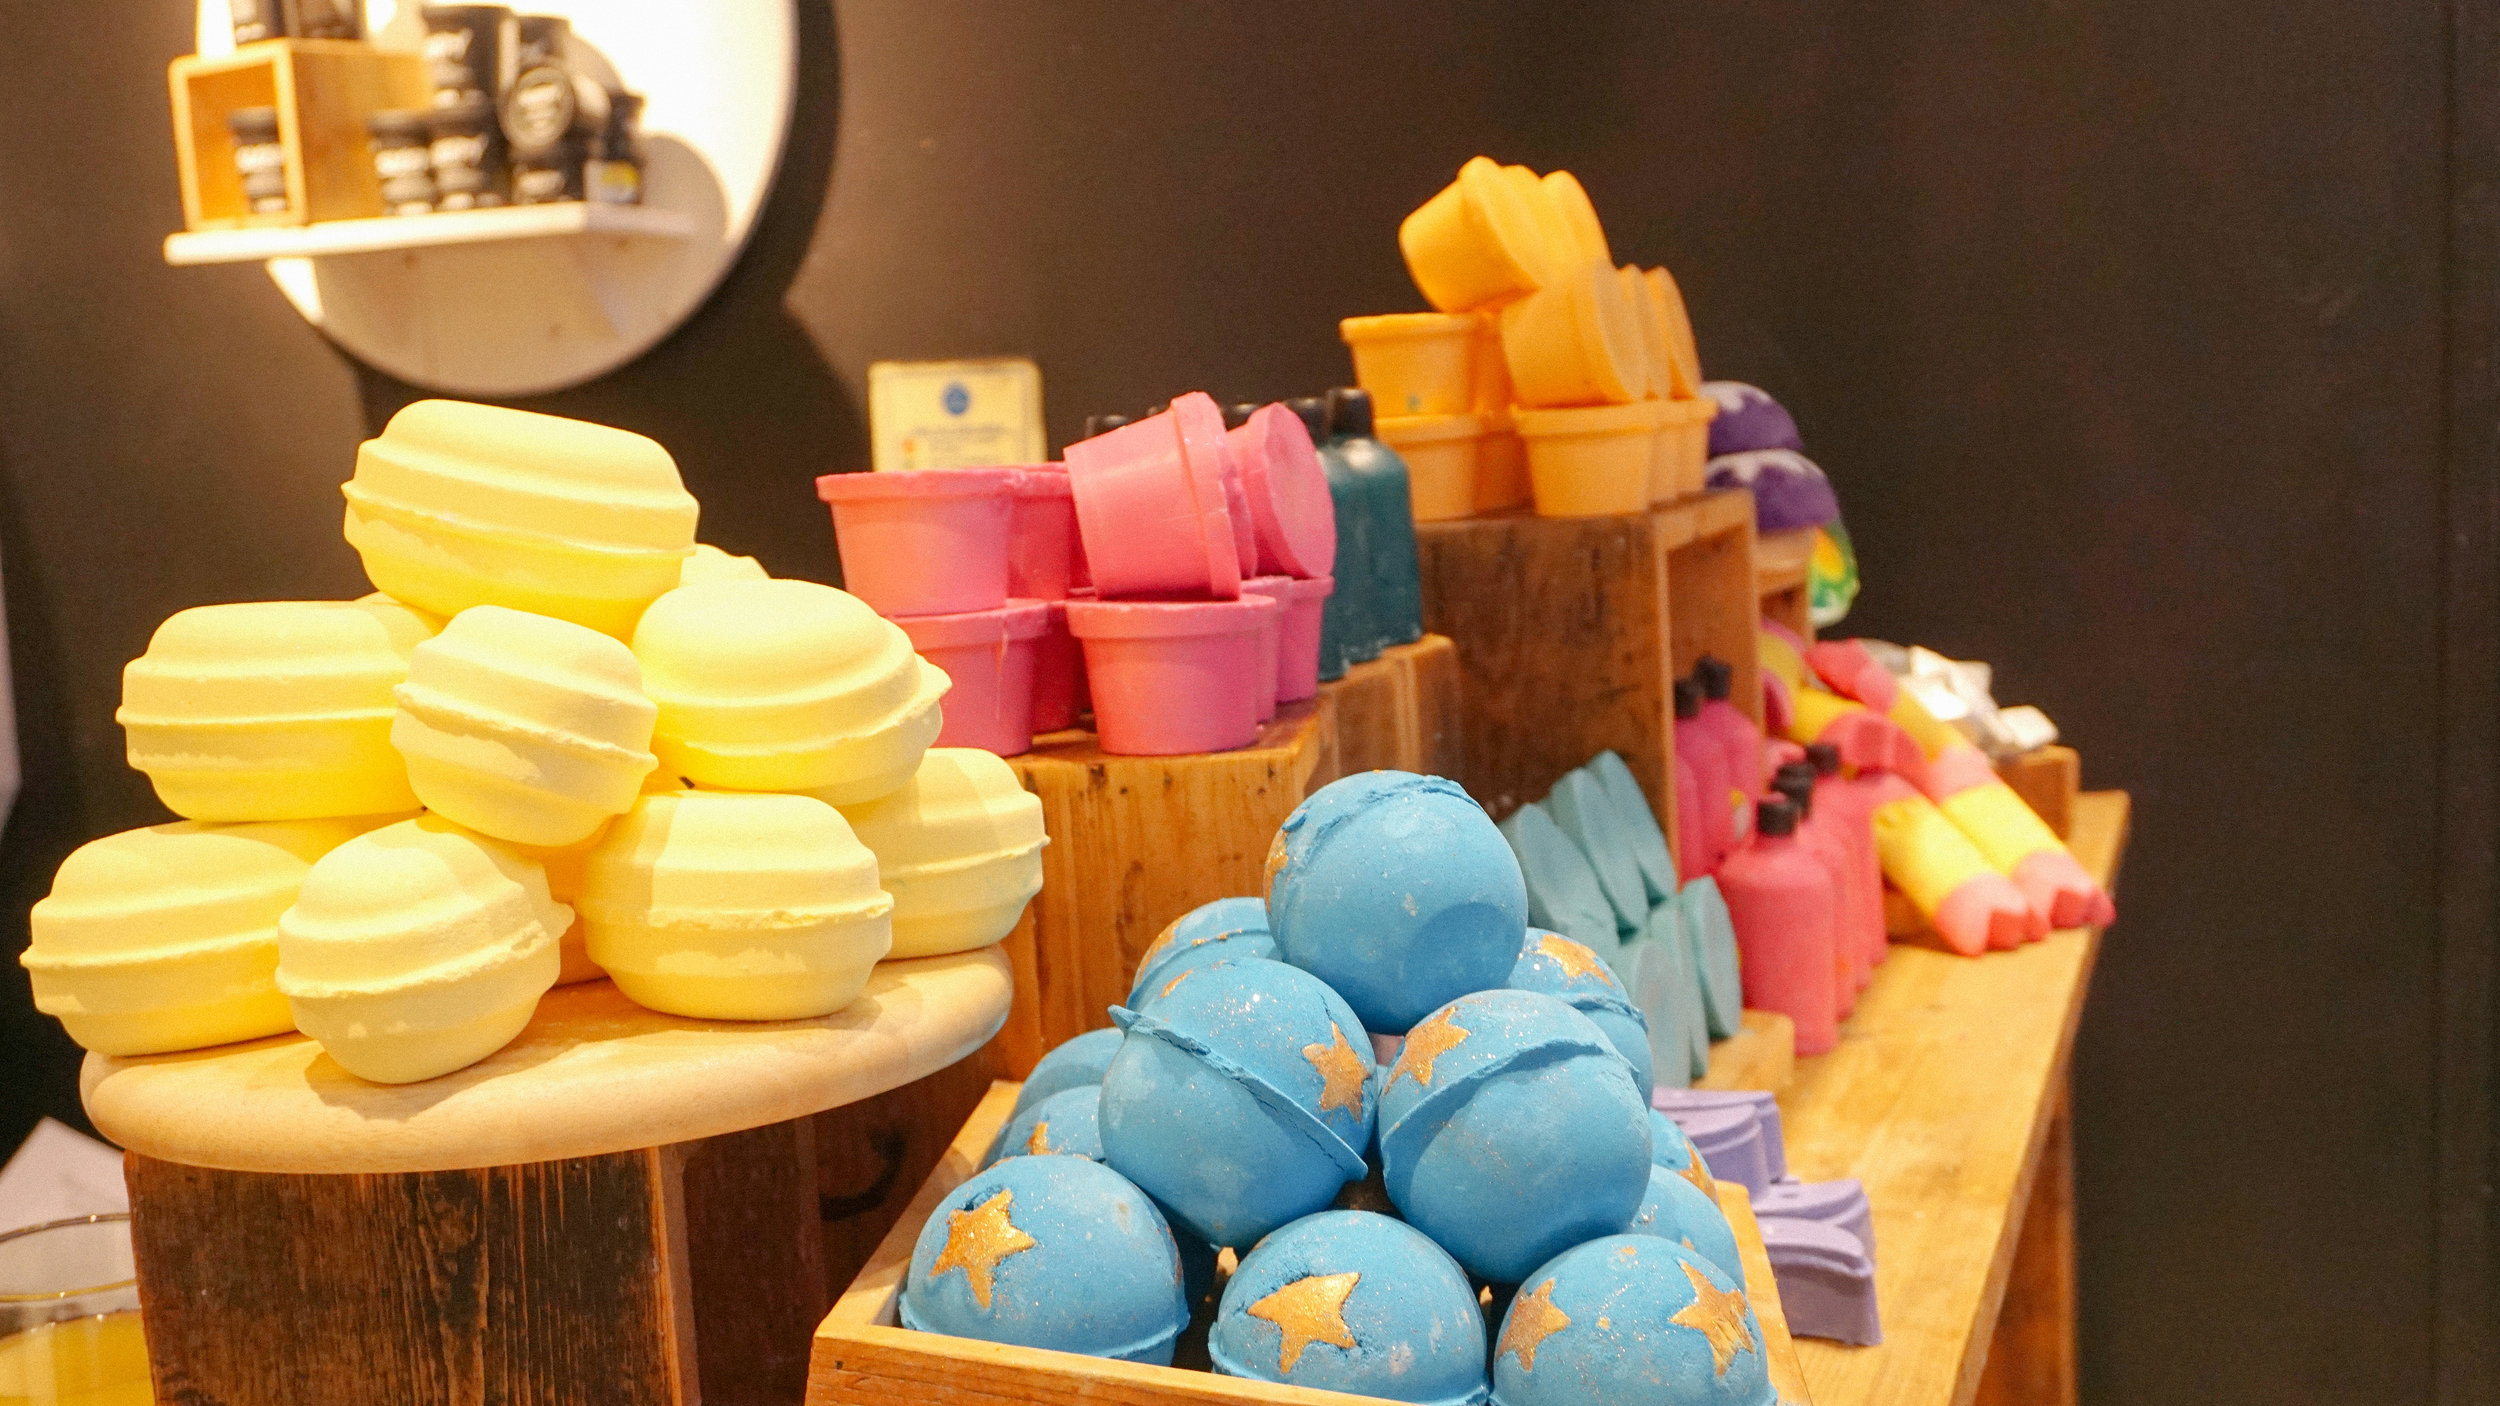 Featuring  Sherbet Dip Bath Bomb ,  Shoot For The Stars Bath Bomb  and  the new 'Naked' line